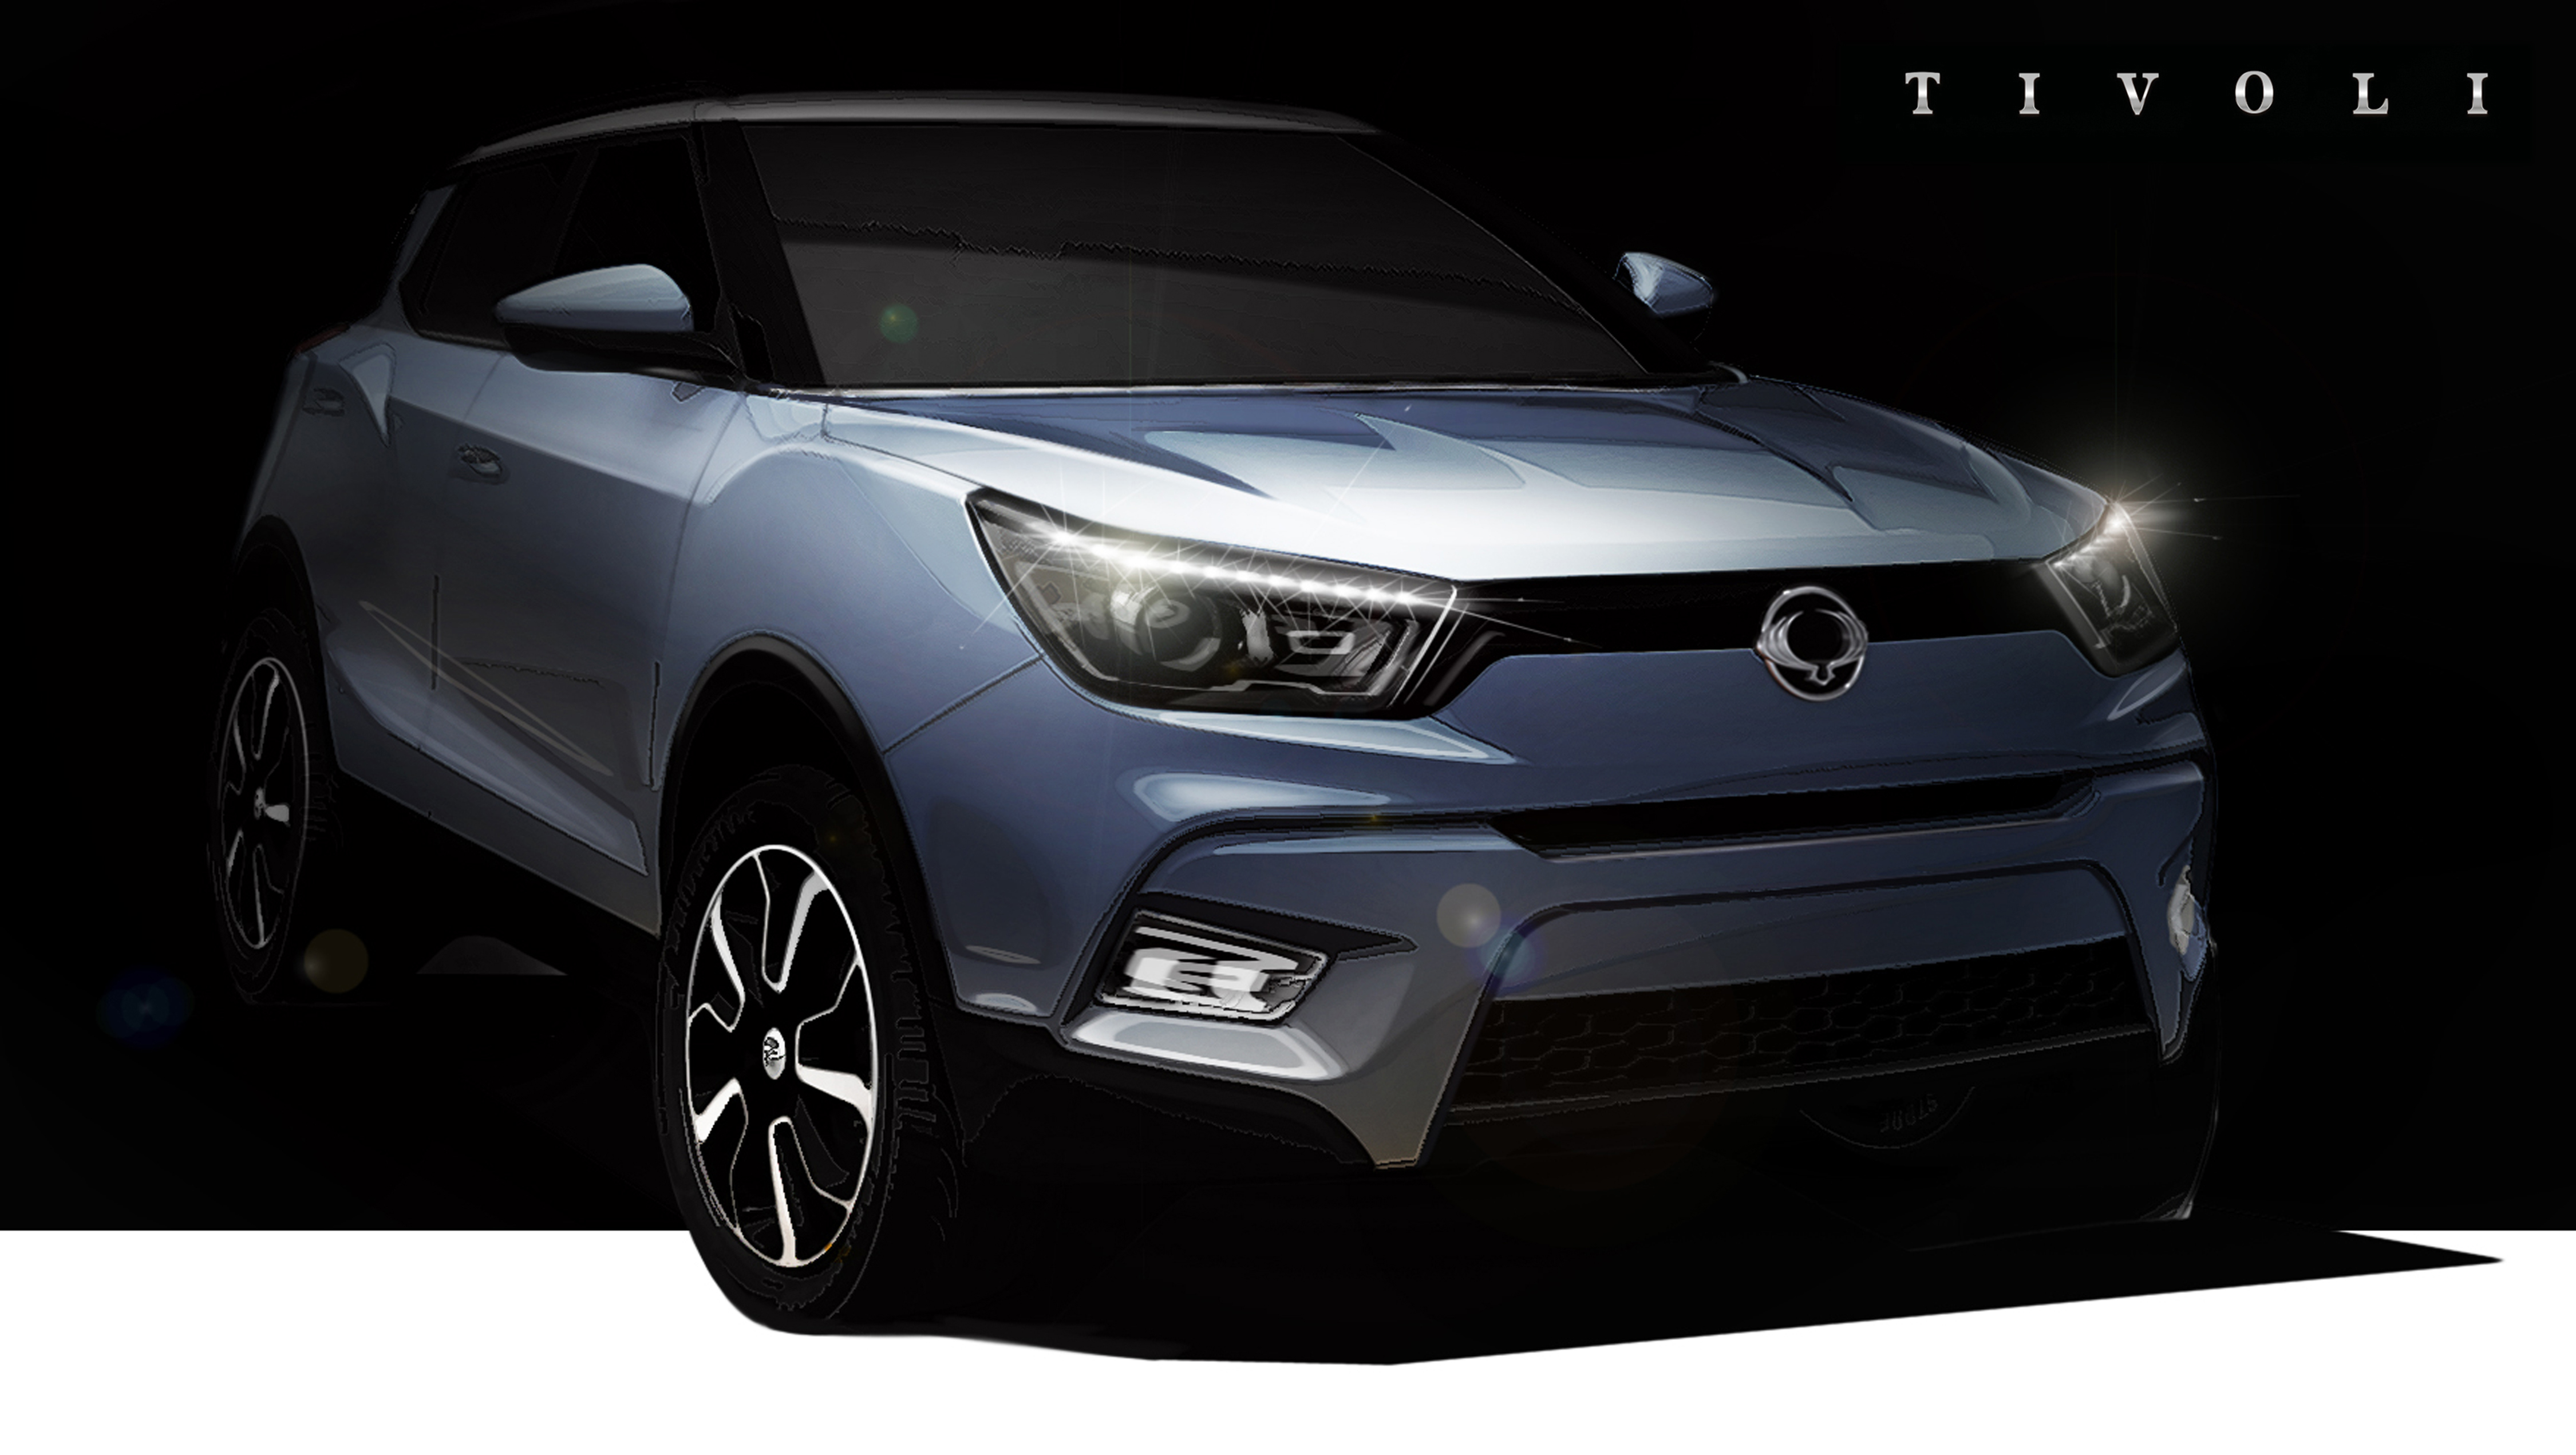 Ssangyong, Tivoli, sketch, front